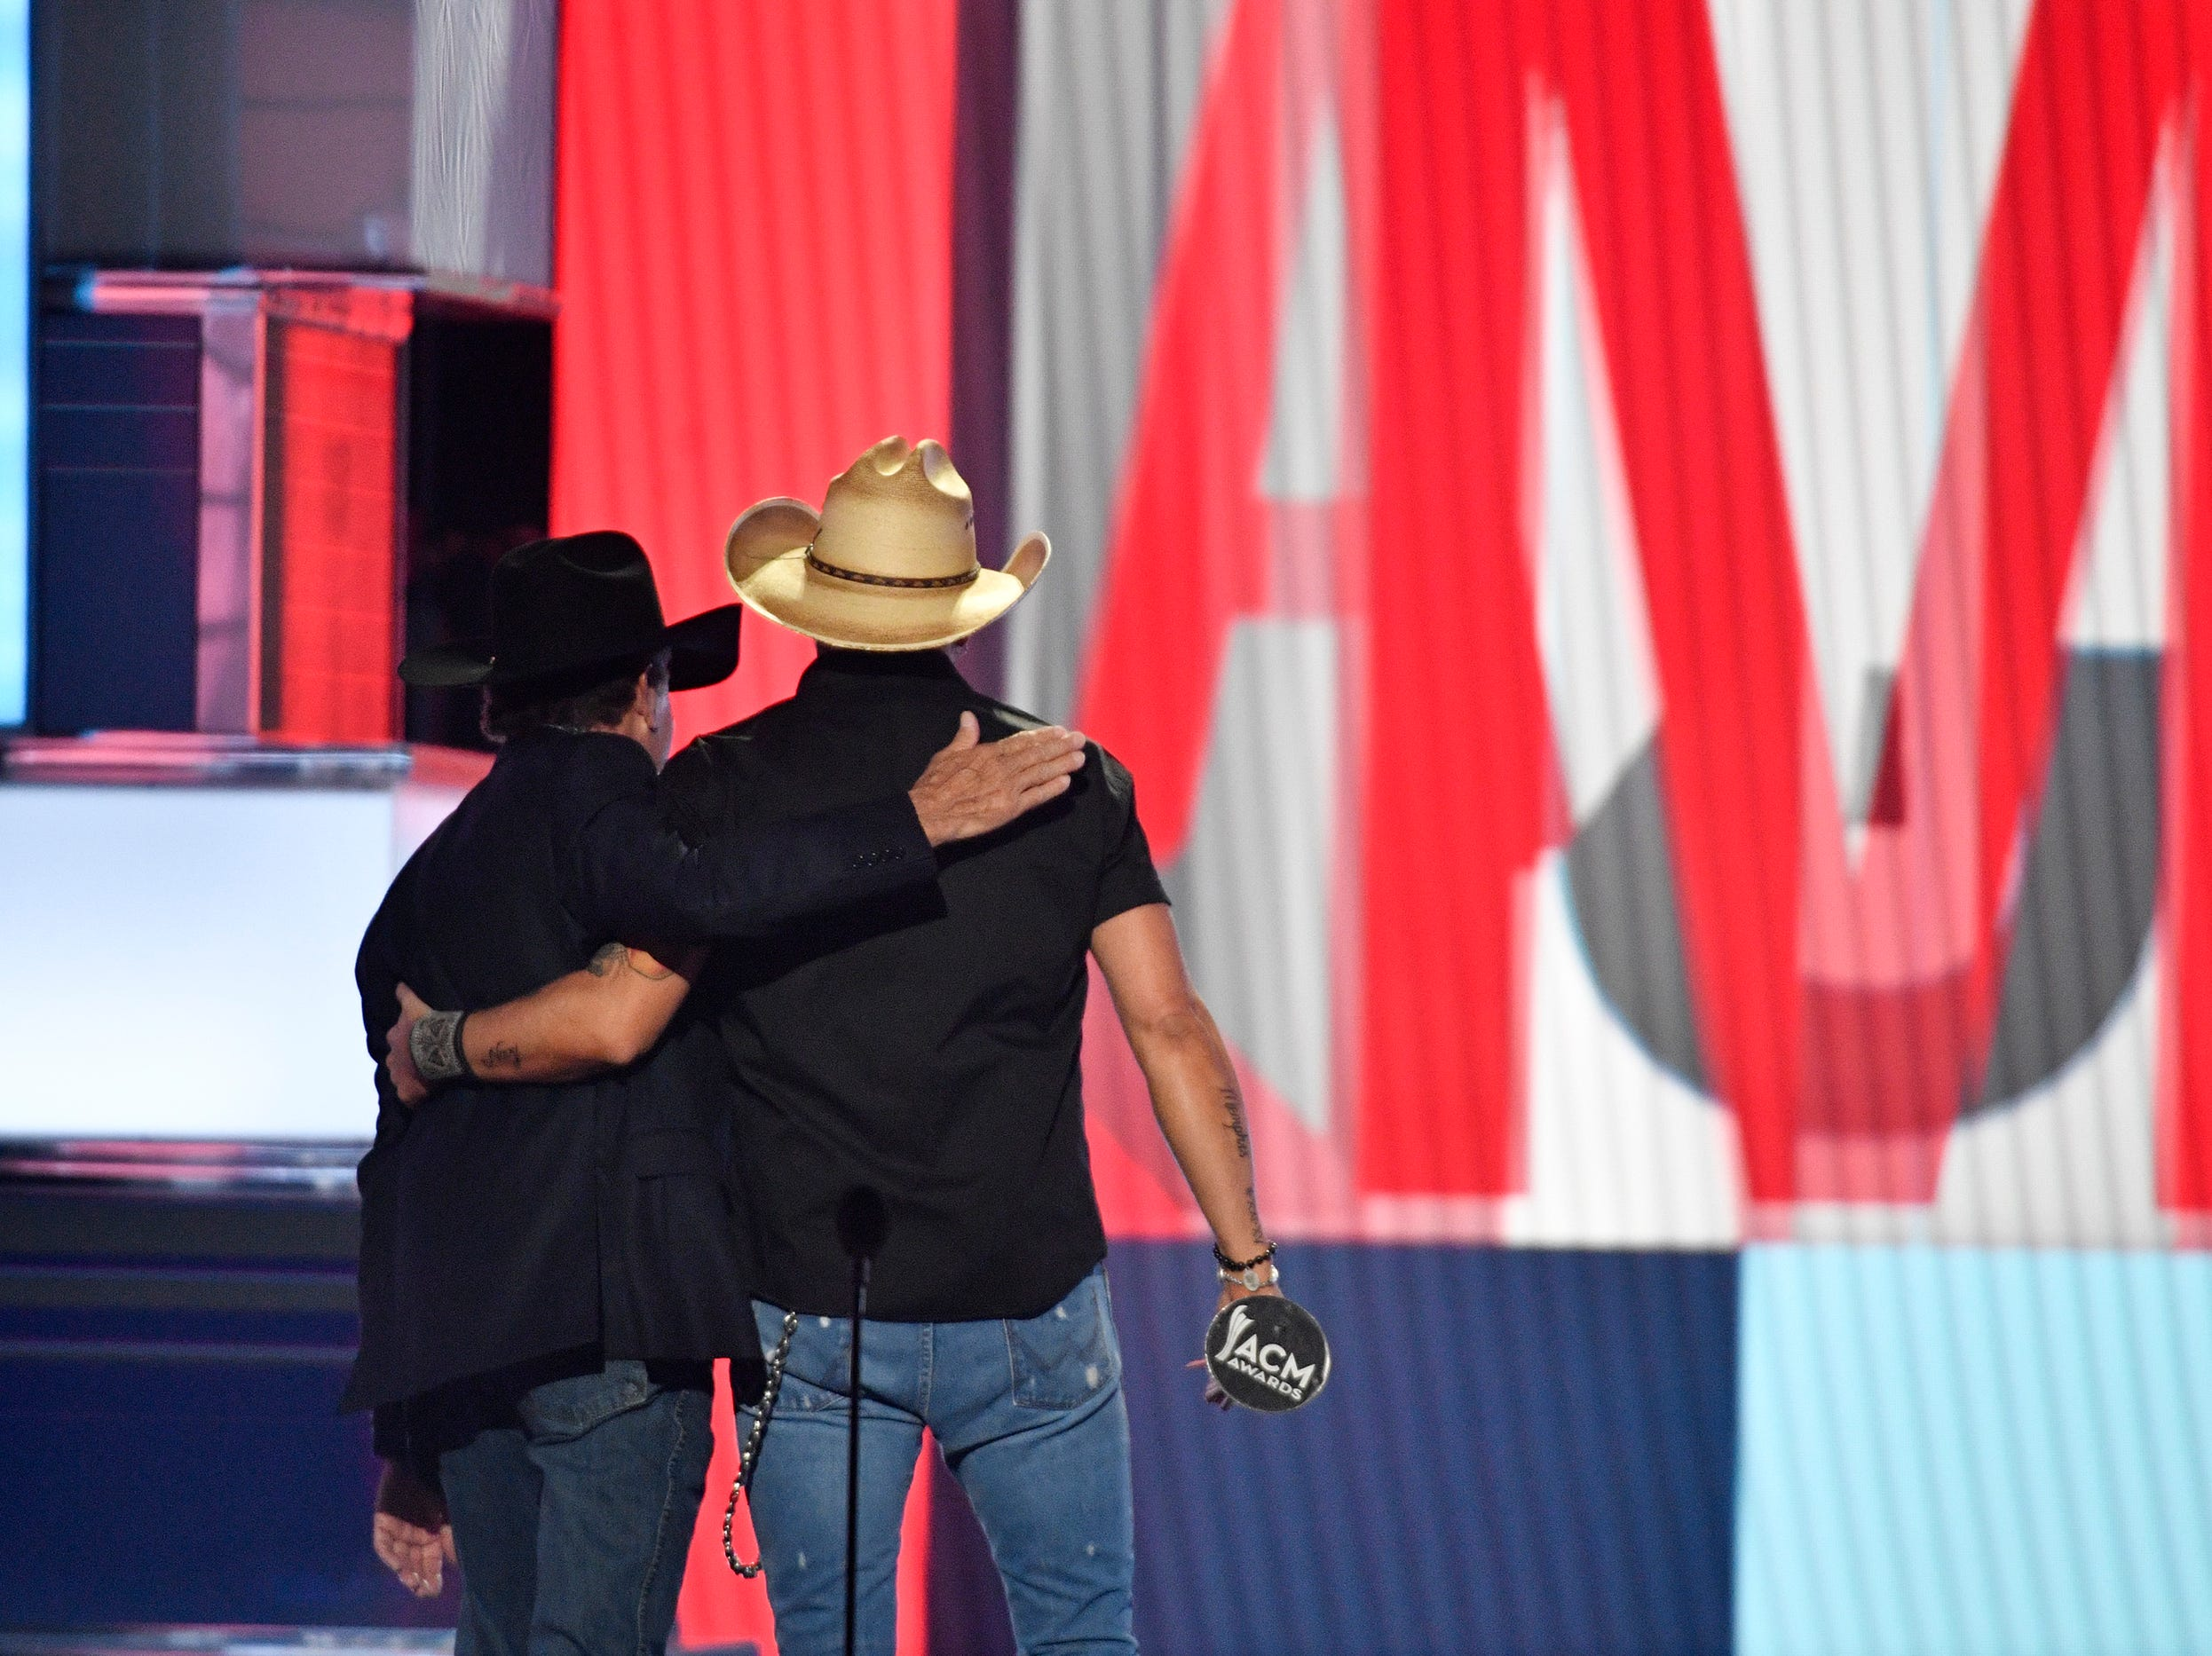 George Strait, left, and Jason Aldean, leave the stage after Aldean accepted the ACM Dick Clark Artist of the Decade Award during the 54TH Academy of Country Music Awards Sunday, April 7, 2019, in Las Vegas, Nev.